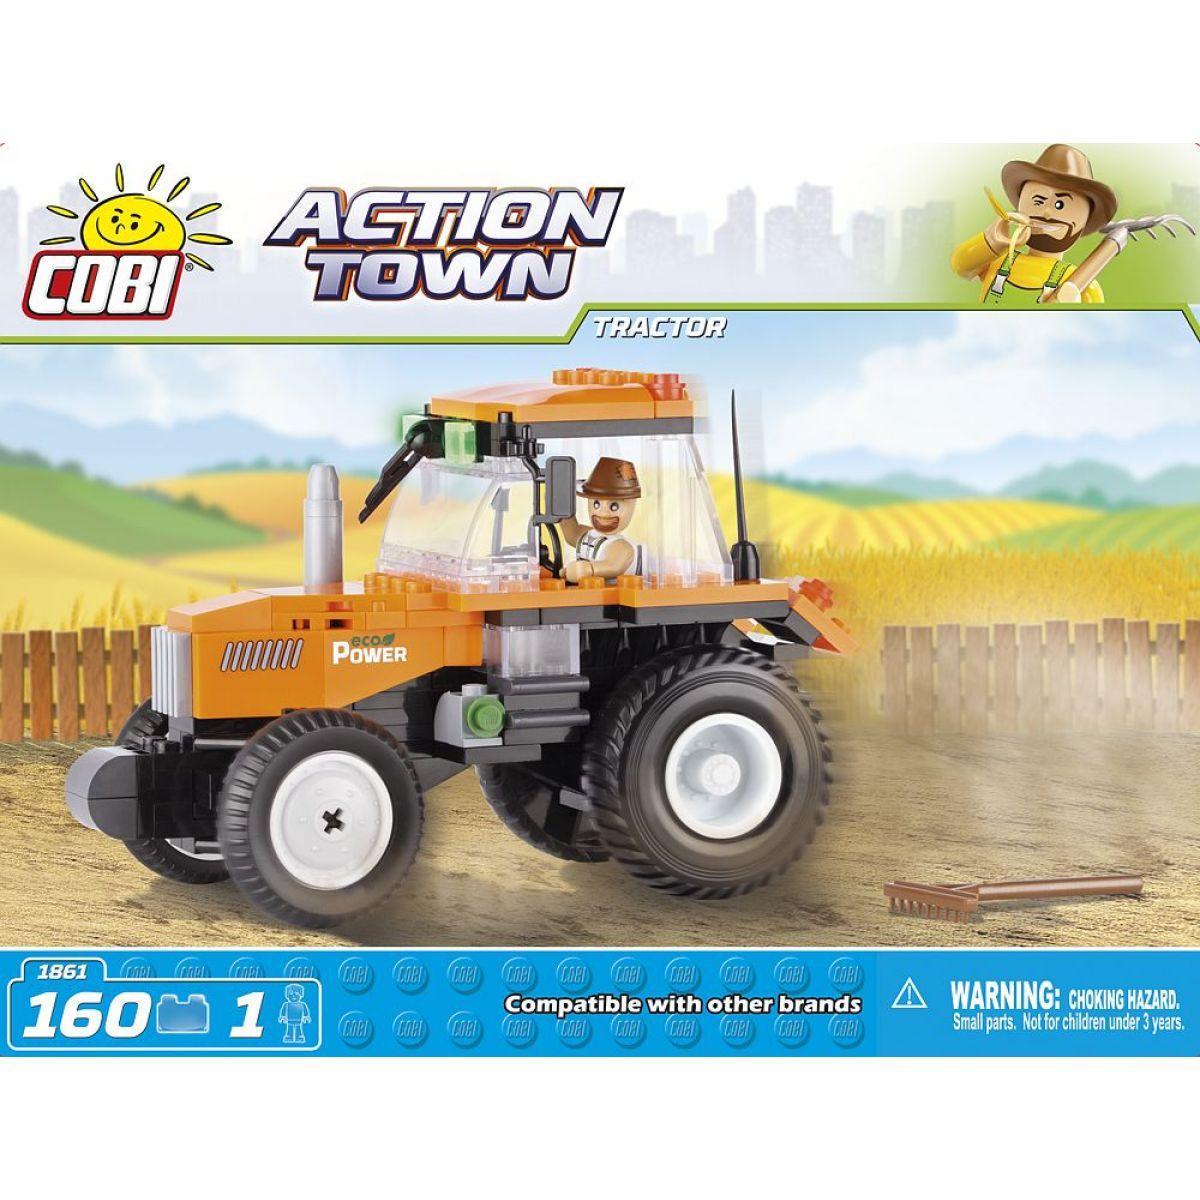 Cobi Action Town 1861 Farma traktor